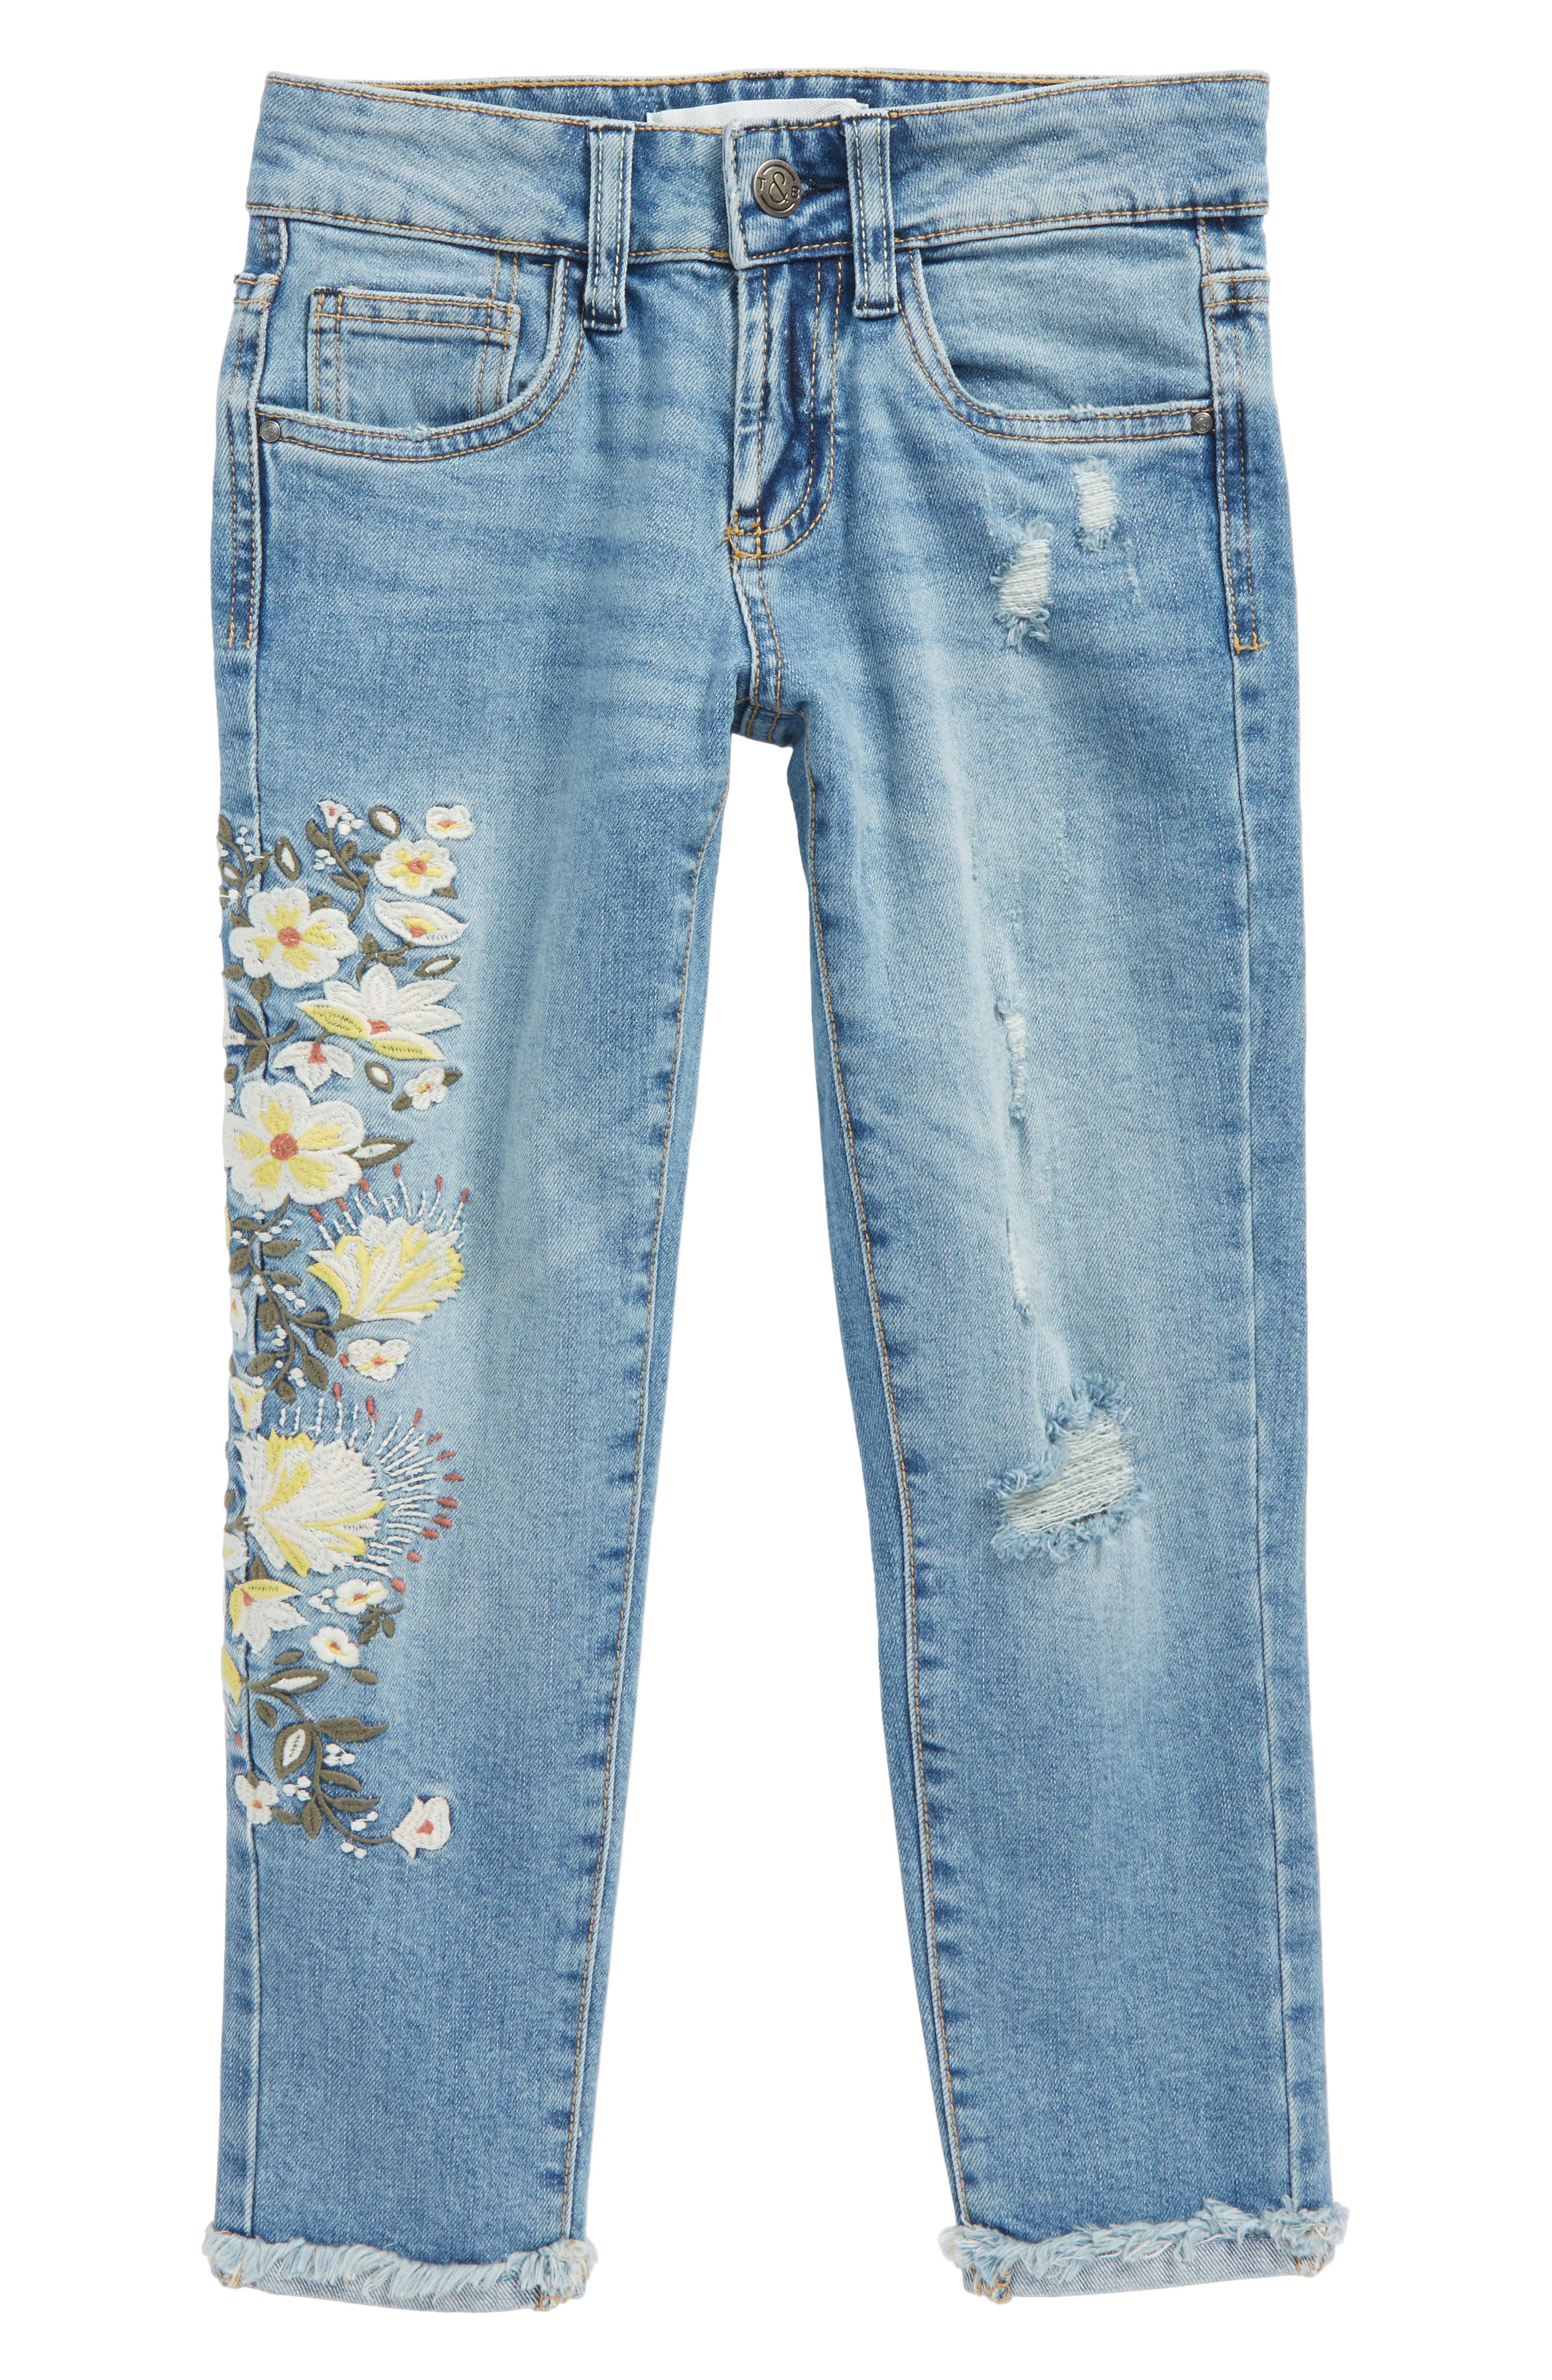 Embellished Jeans,                             Main thumbnail 1, color,                             Sunbleached Wash